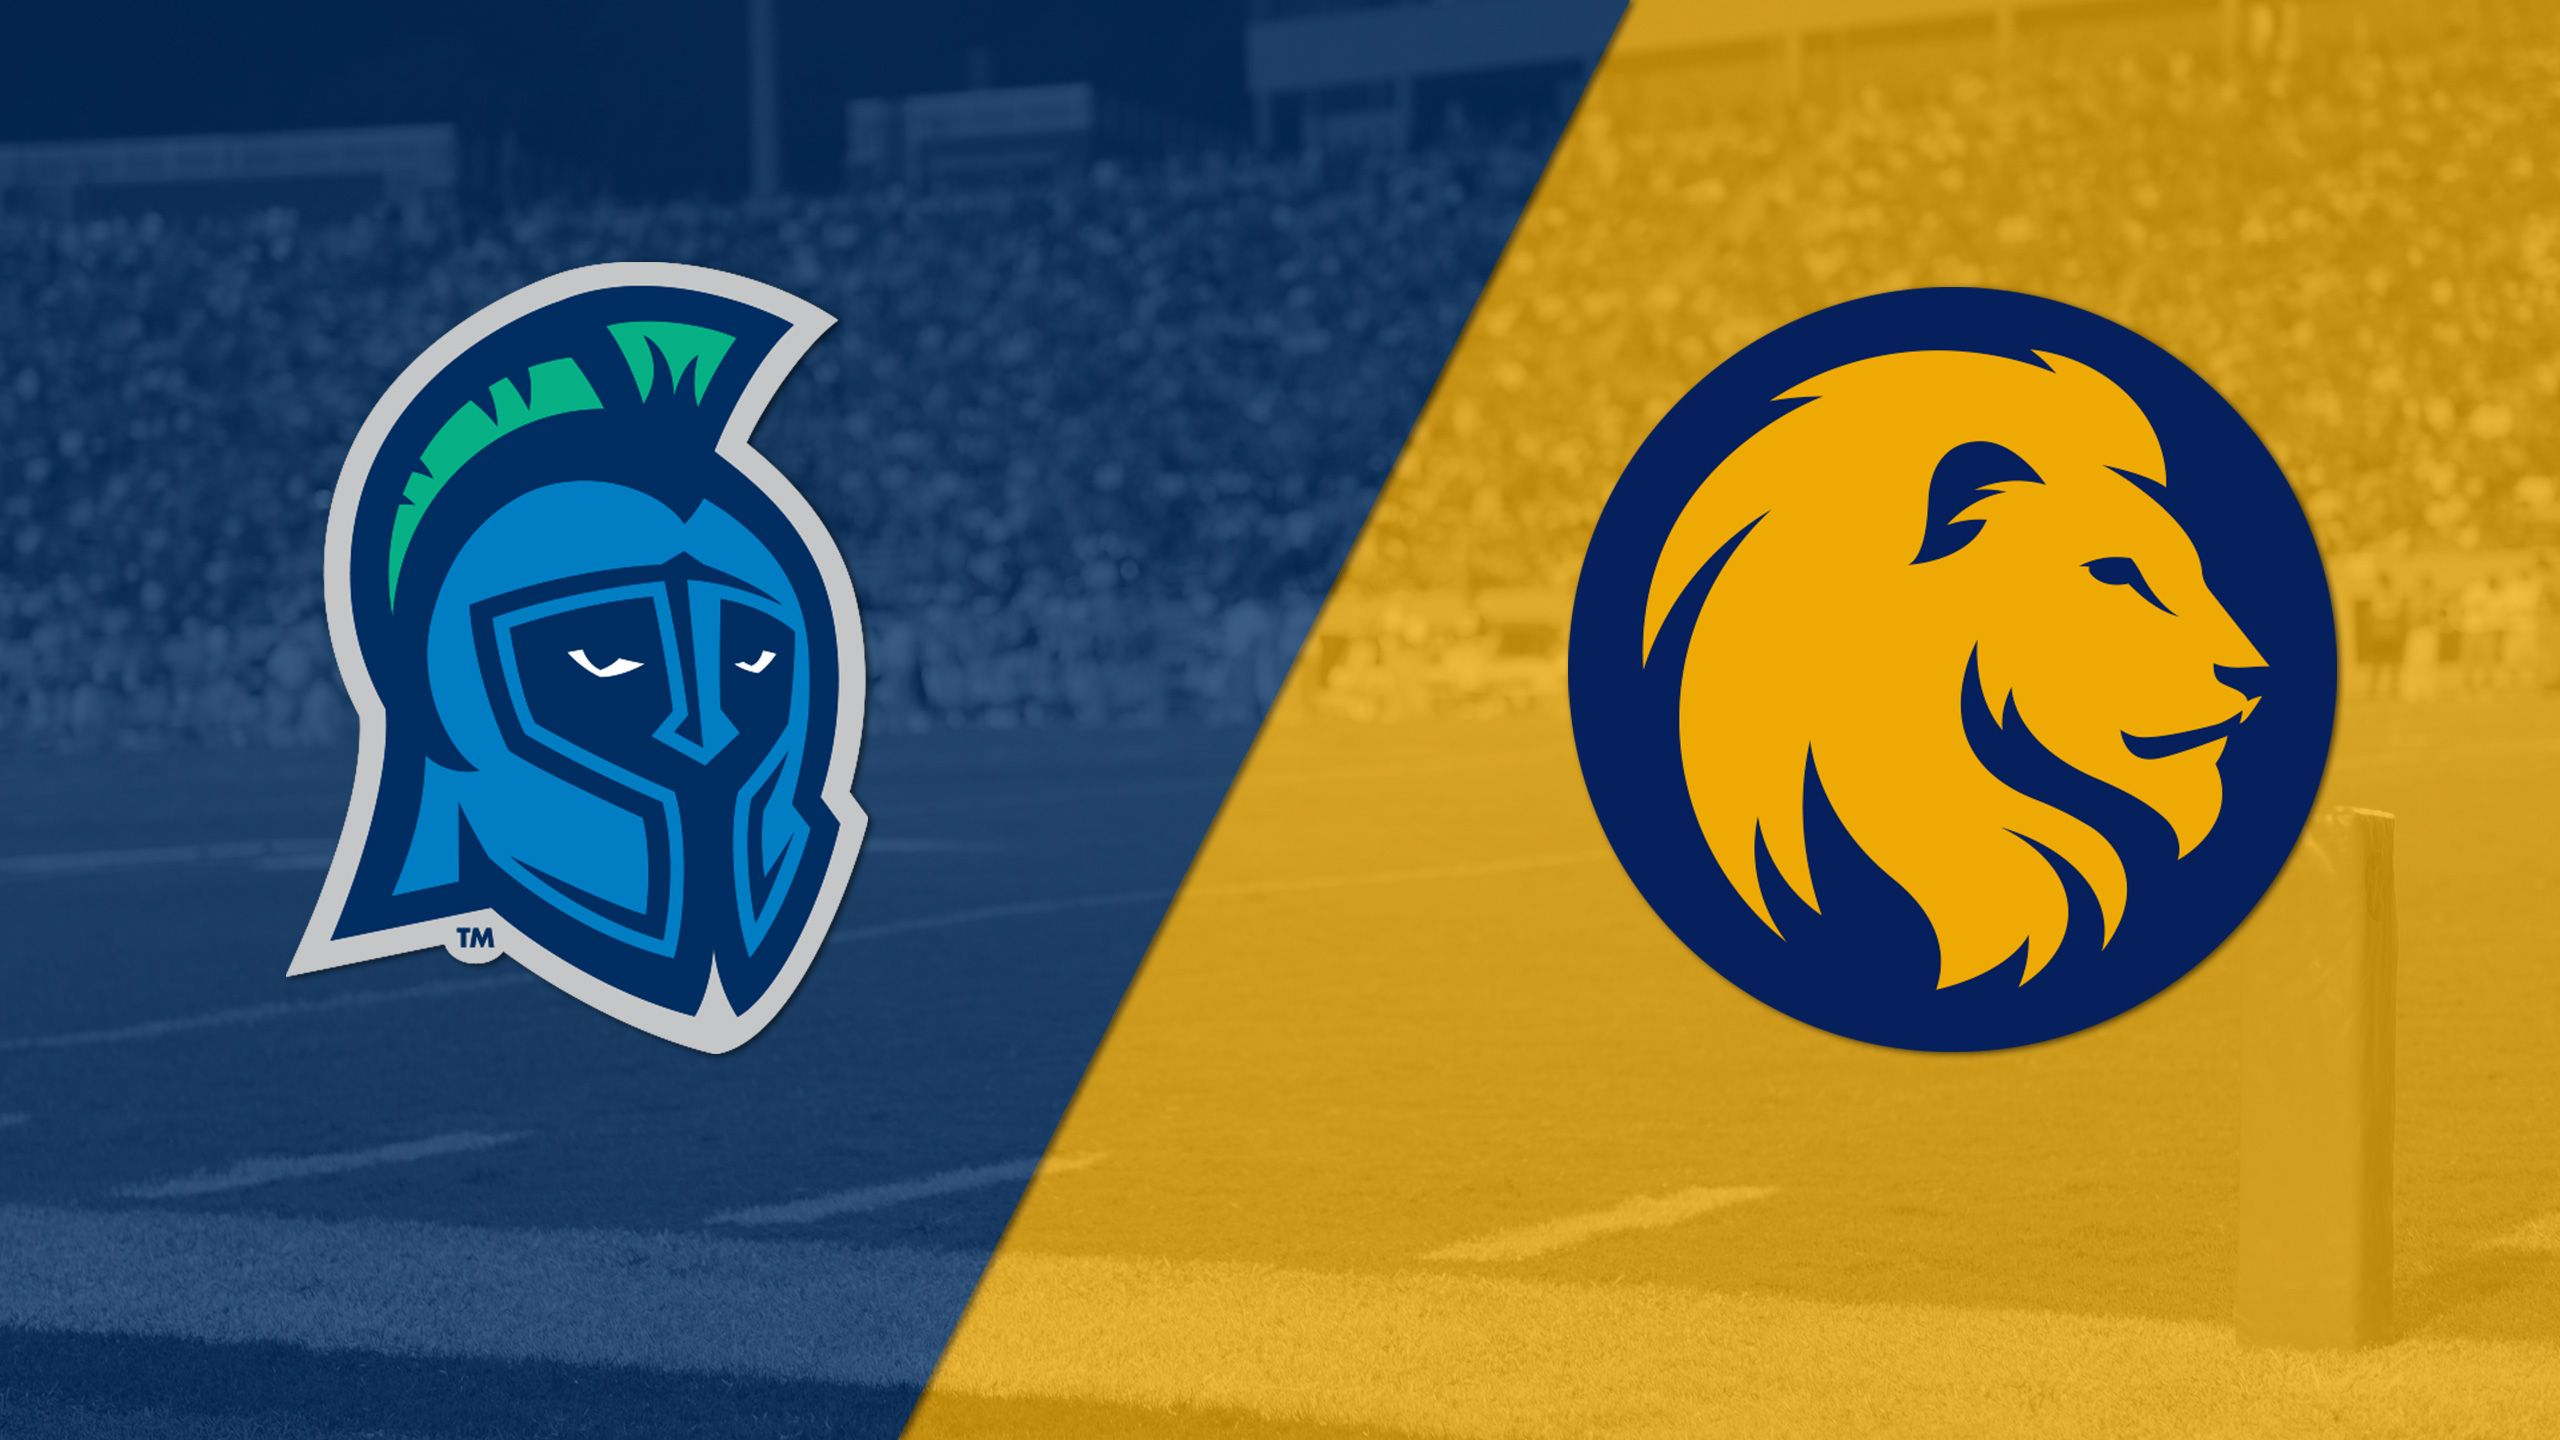 West Florida vs. Texas A&M Commerce (Championship) (NCAA Division II Football Championship) (re-air)